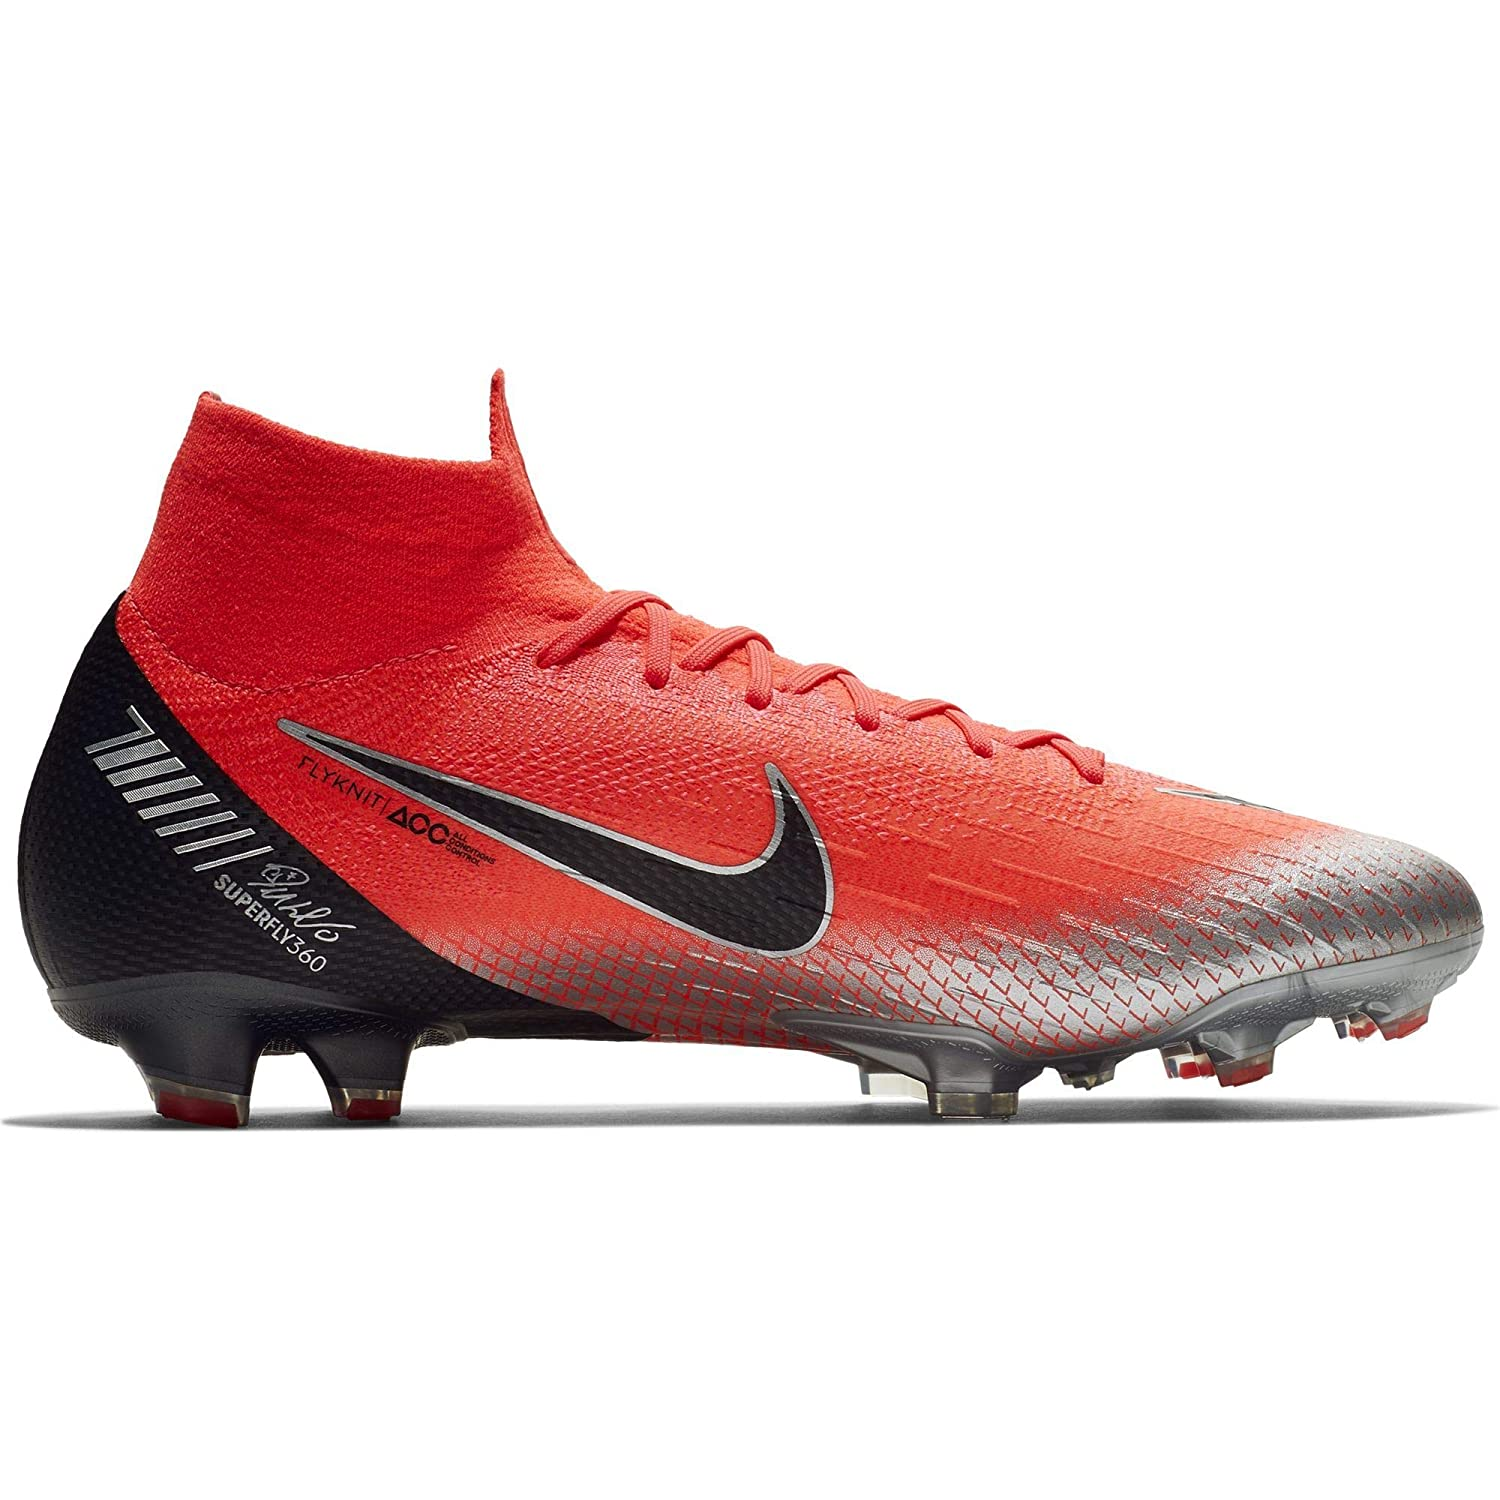 pretty nice d1d90 f22b1 Nike Men's Mercurial Superfly 360 Elite CR7 FG-Flash Crimson/Total  Crimson/Black